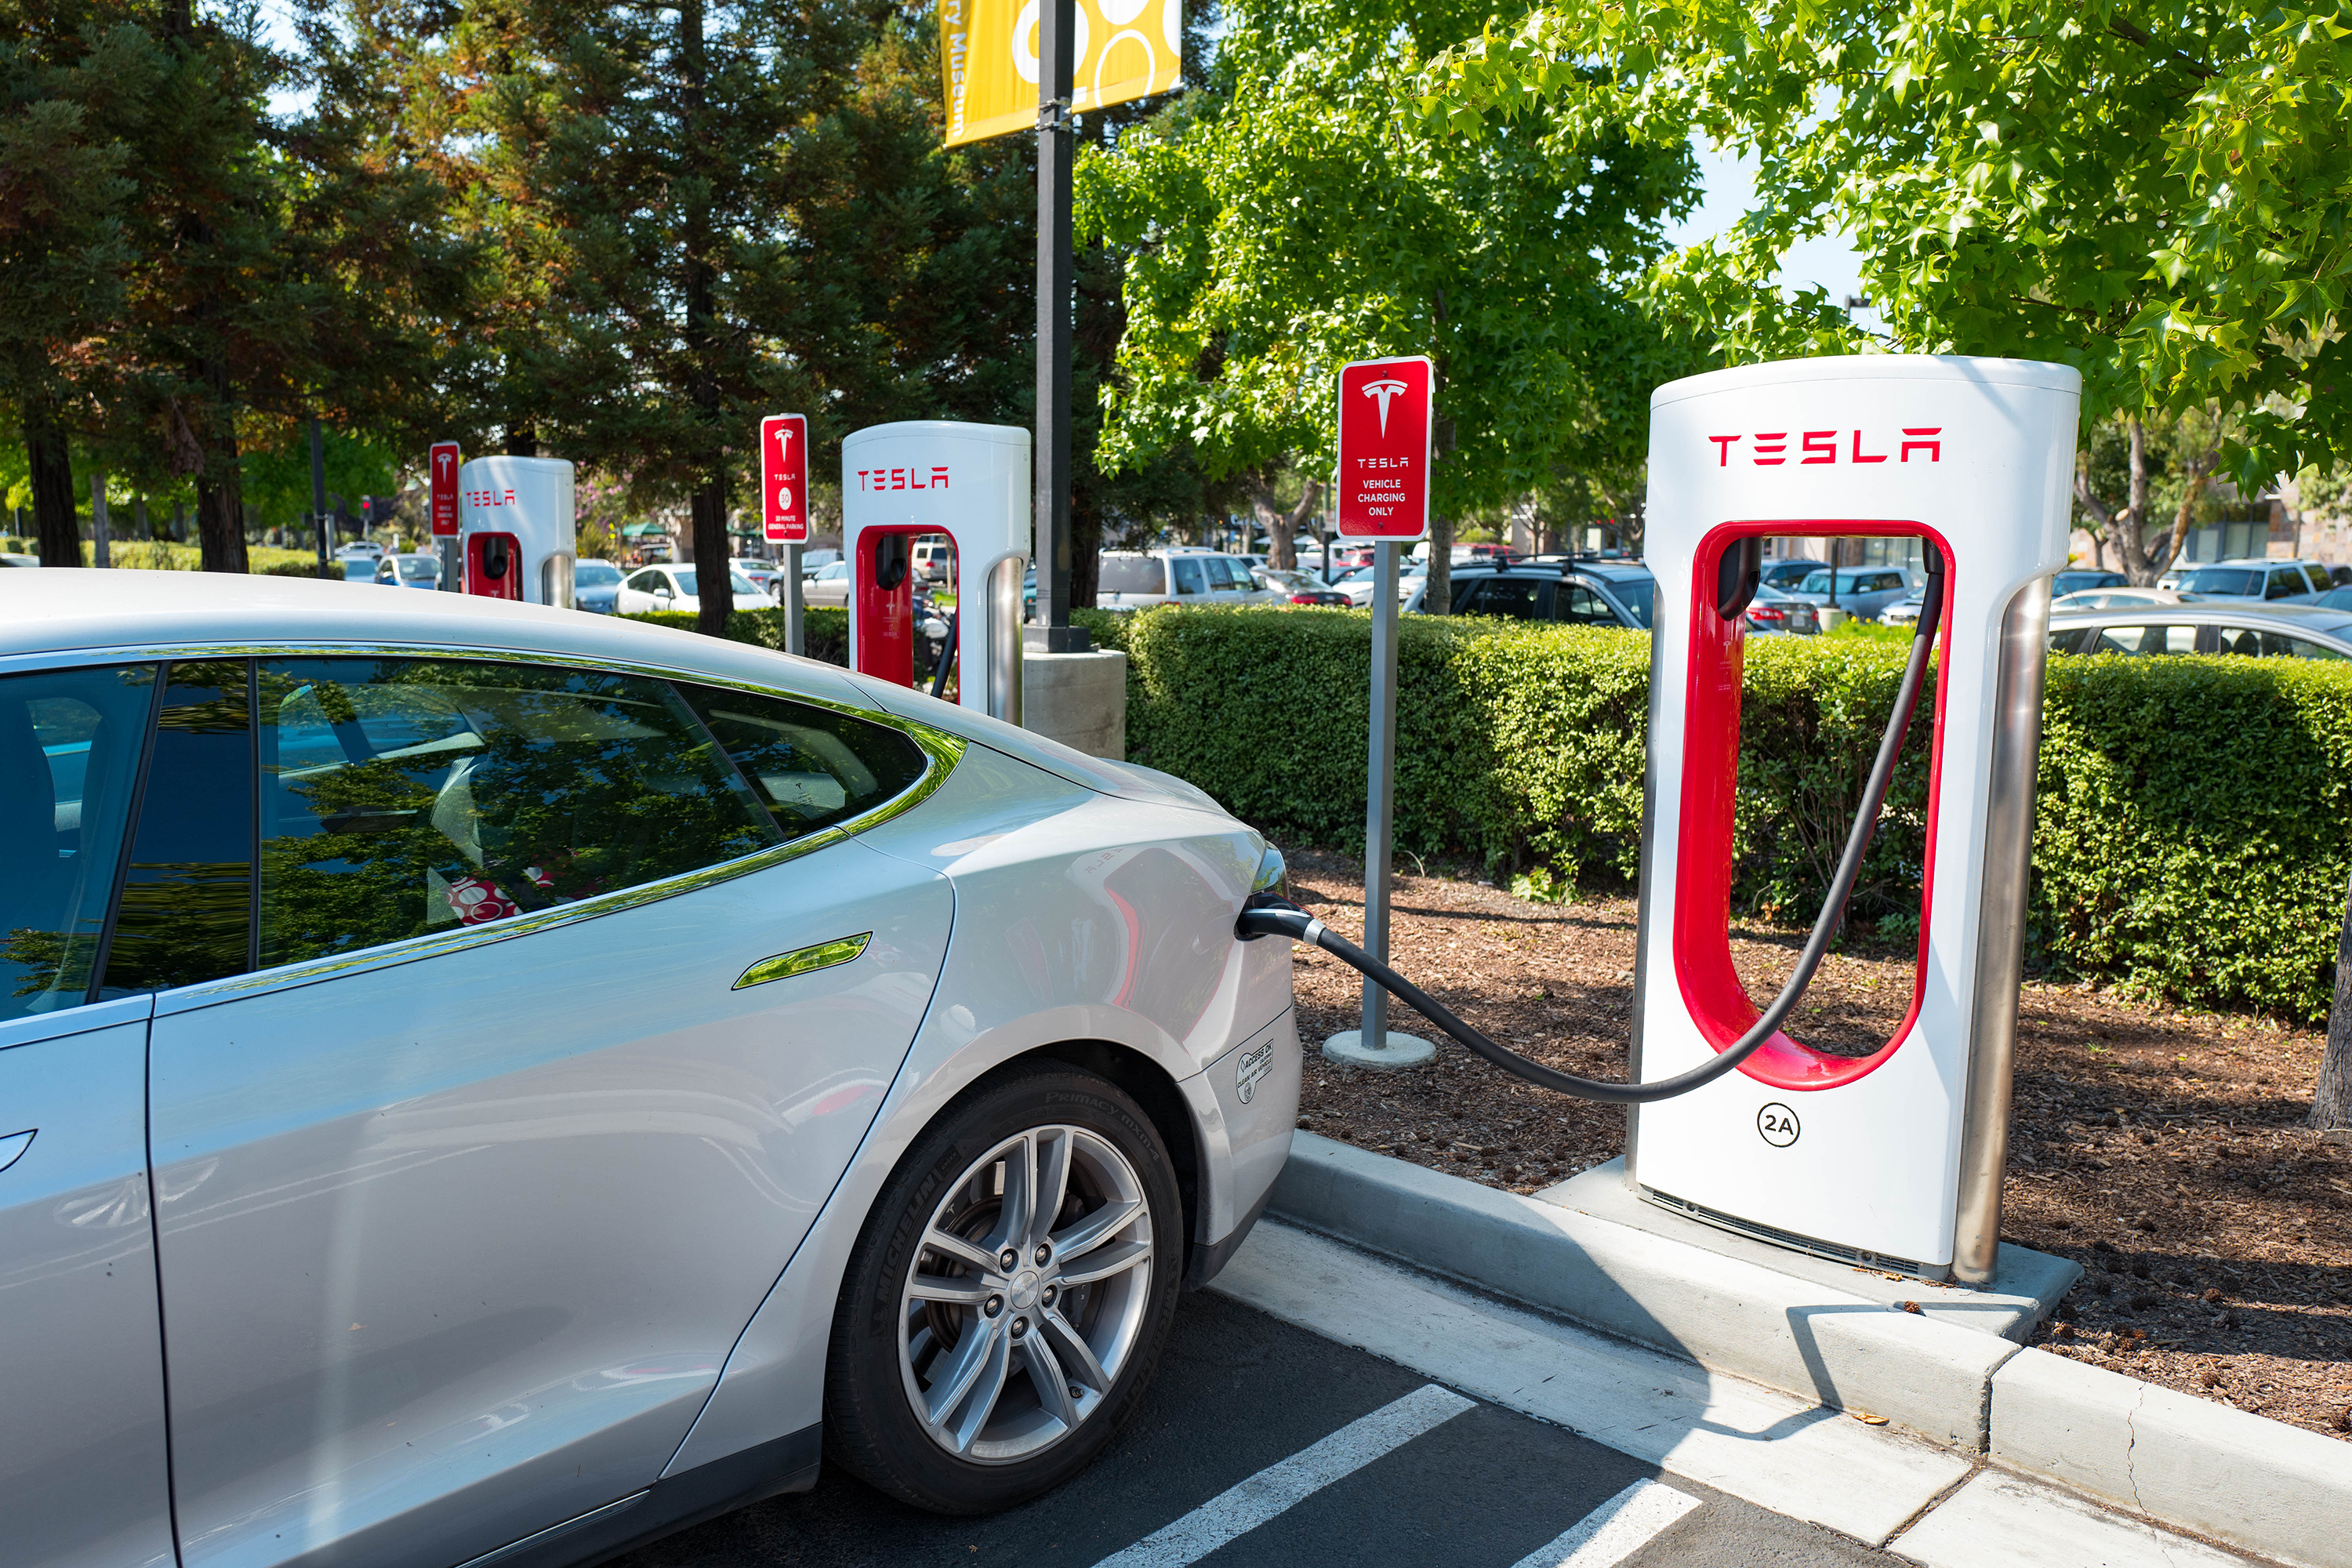 Hybrid vs electric cars buying guide: Tesla charging station